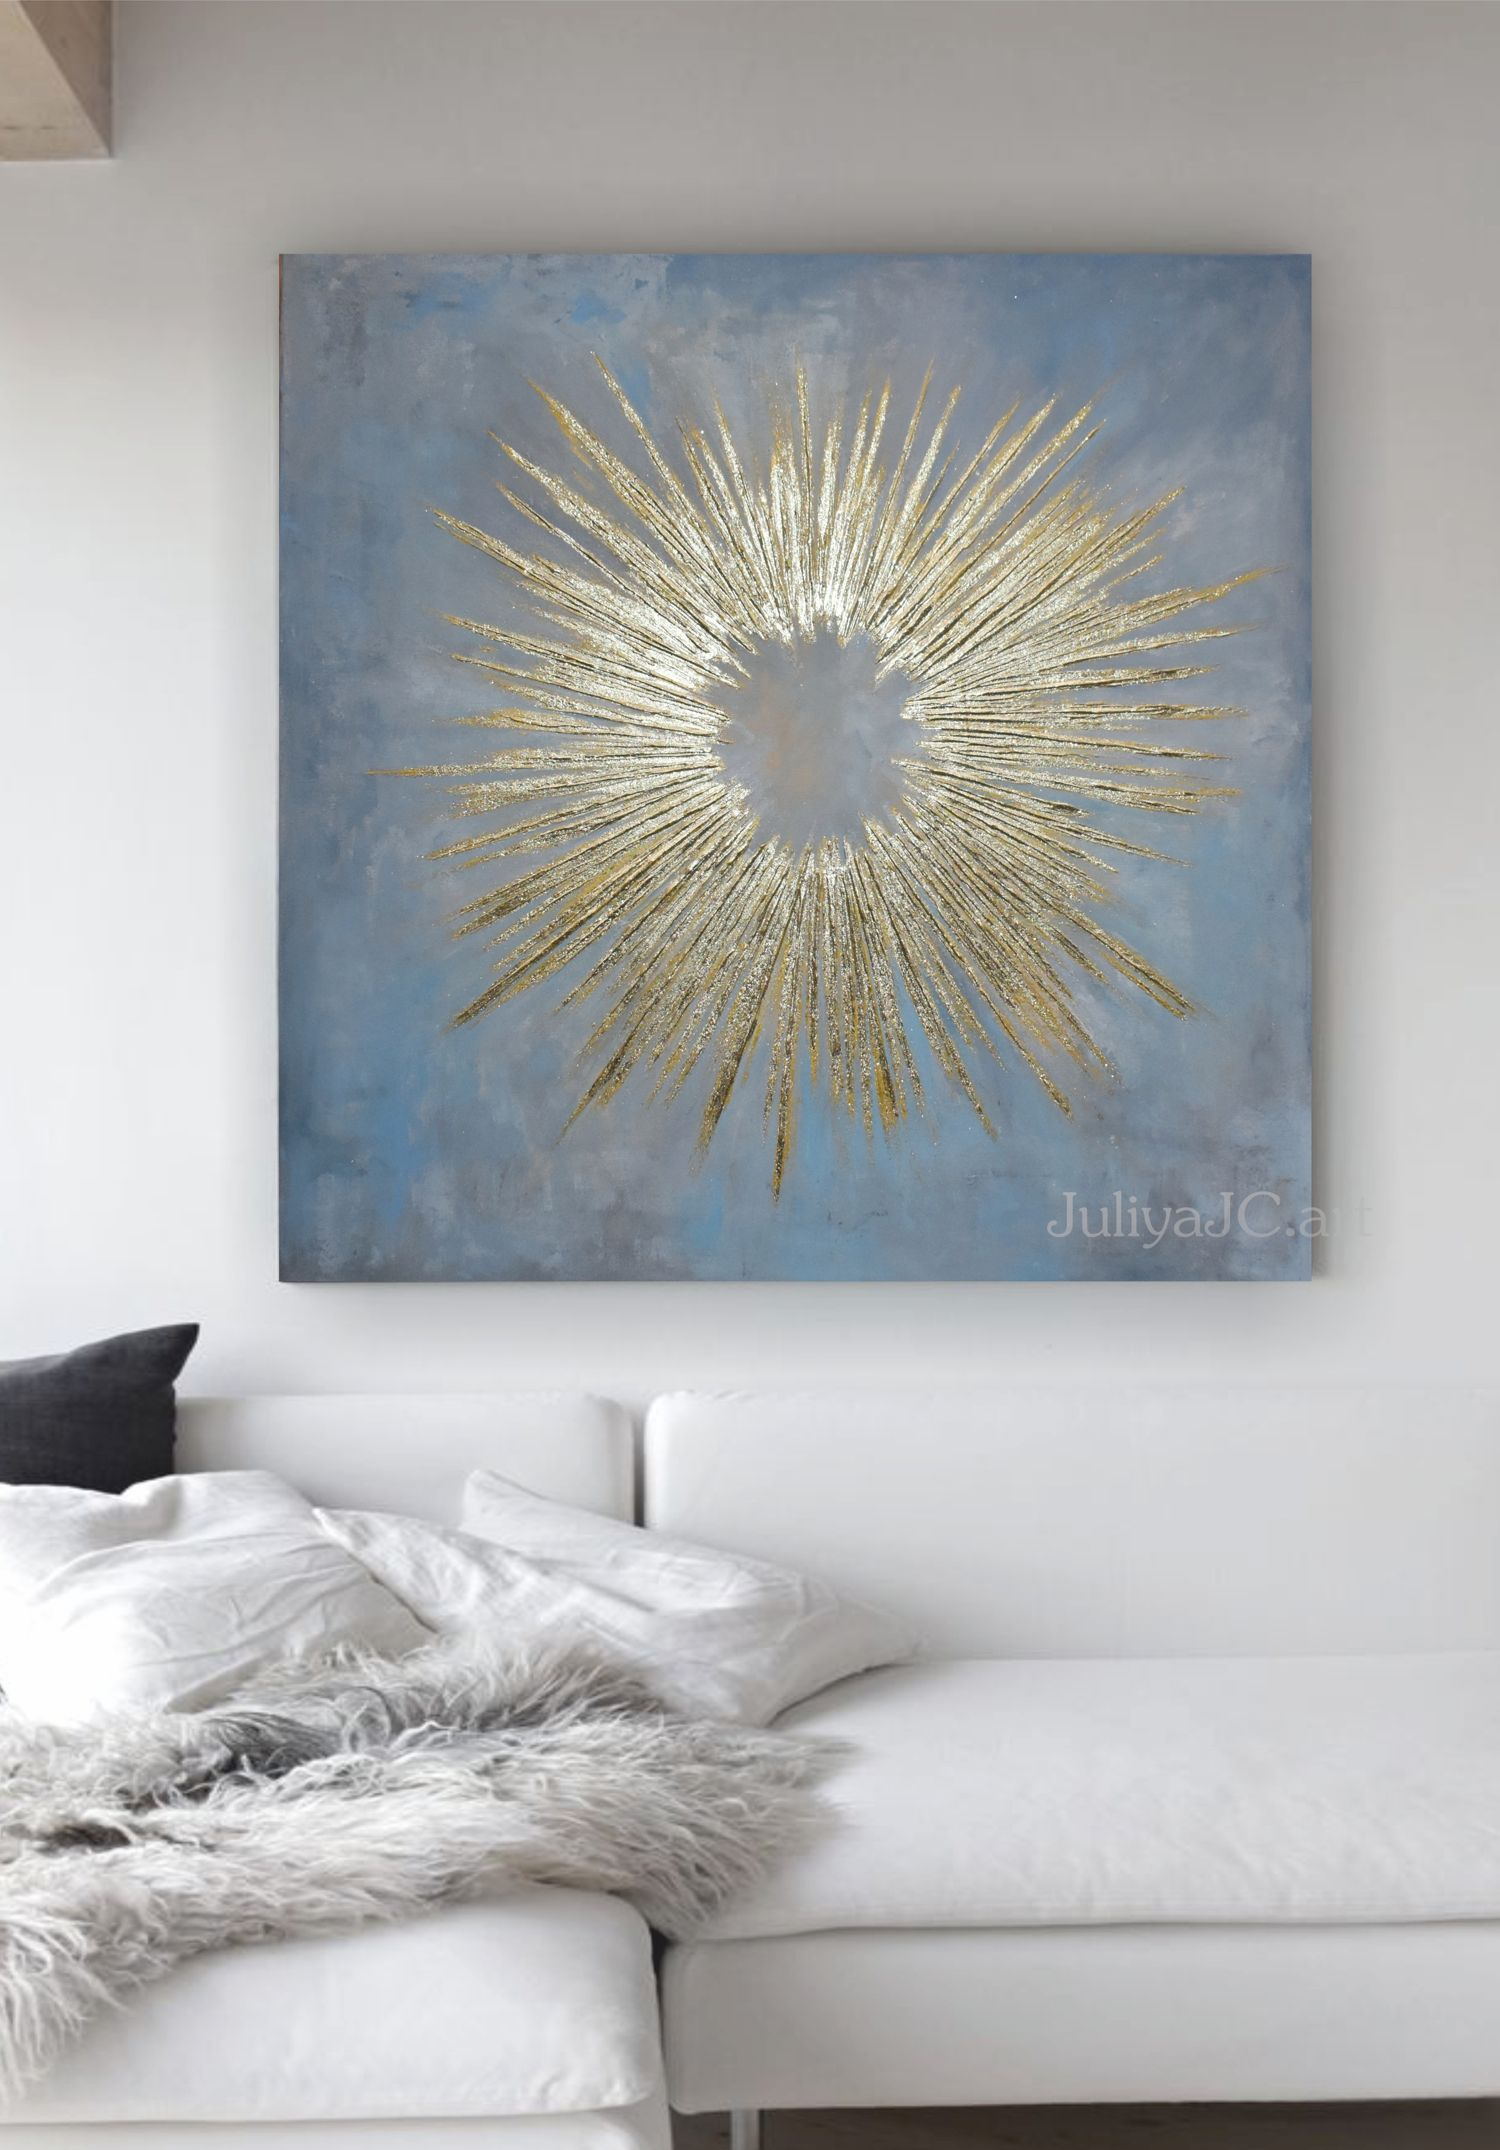 45 Gray Gold And Black Watercolor Large Goldleaf Reproduction Abstract Wall Art For Modern Interiors Xxl Canvas Print Painting By Julia In 2021 Large Abstract Wall Art Abstract Canvas Art Gold